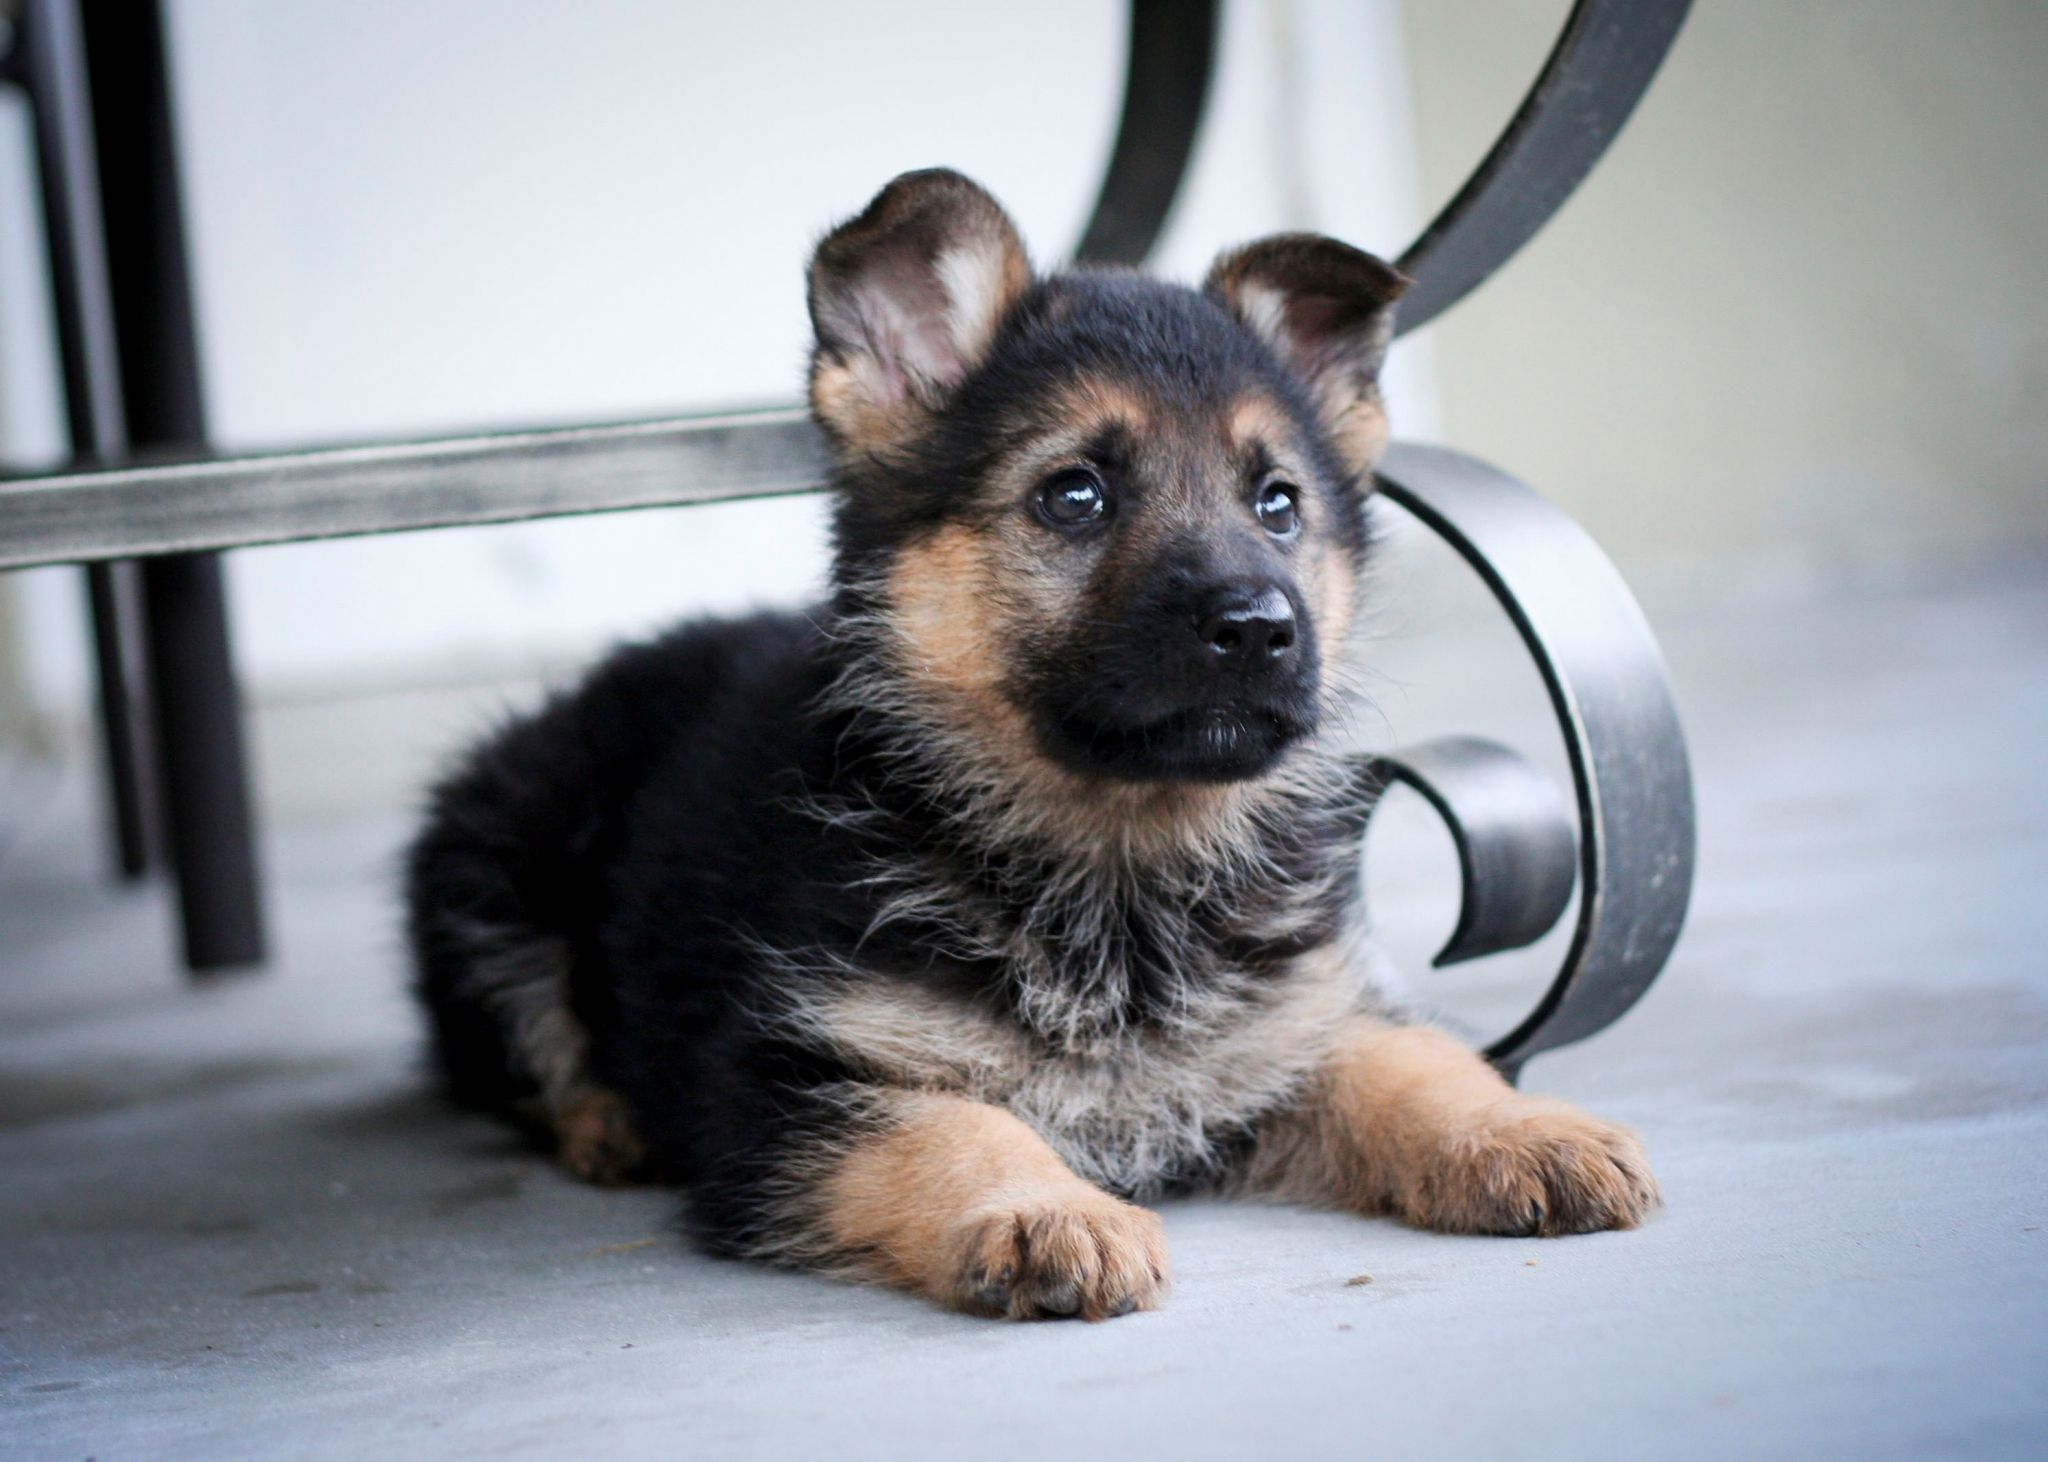 German shepherd hd wallpapers 1080p high quality ololoshka german shepherd puppies are really cute then have a look at the below pictures of adorable german shepherd puppies german shepherd puppies with a baby voltagebd Images